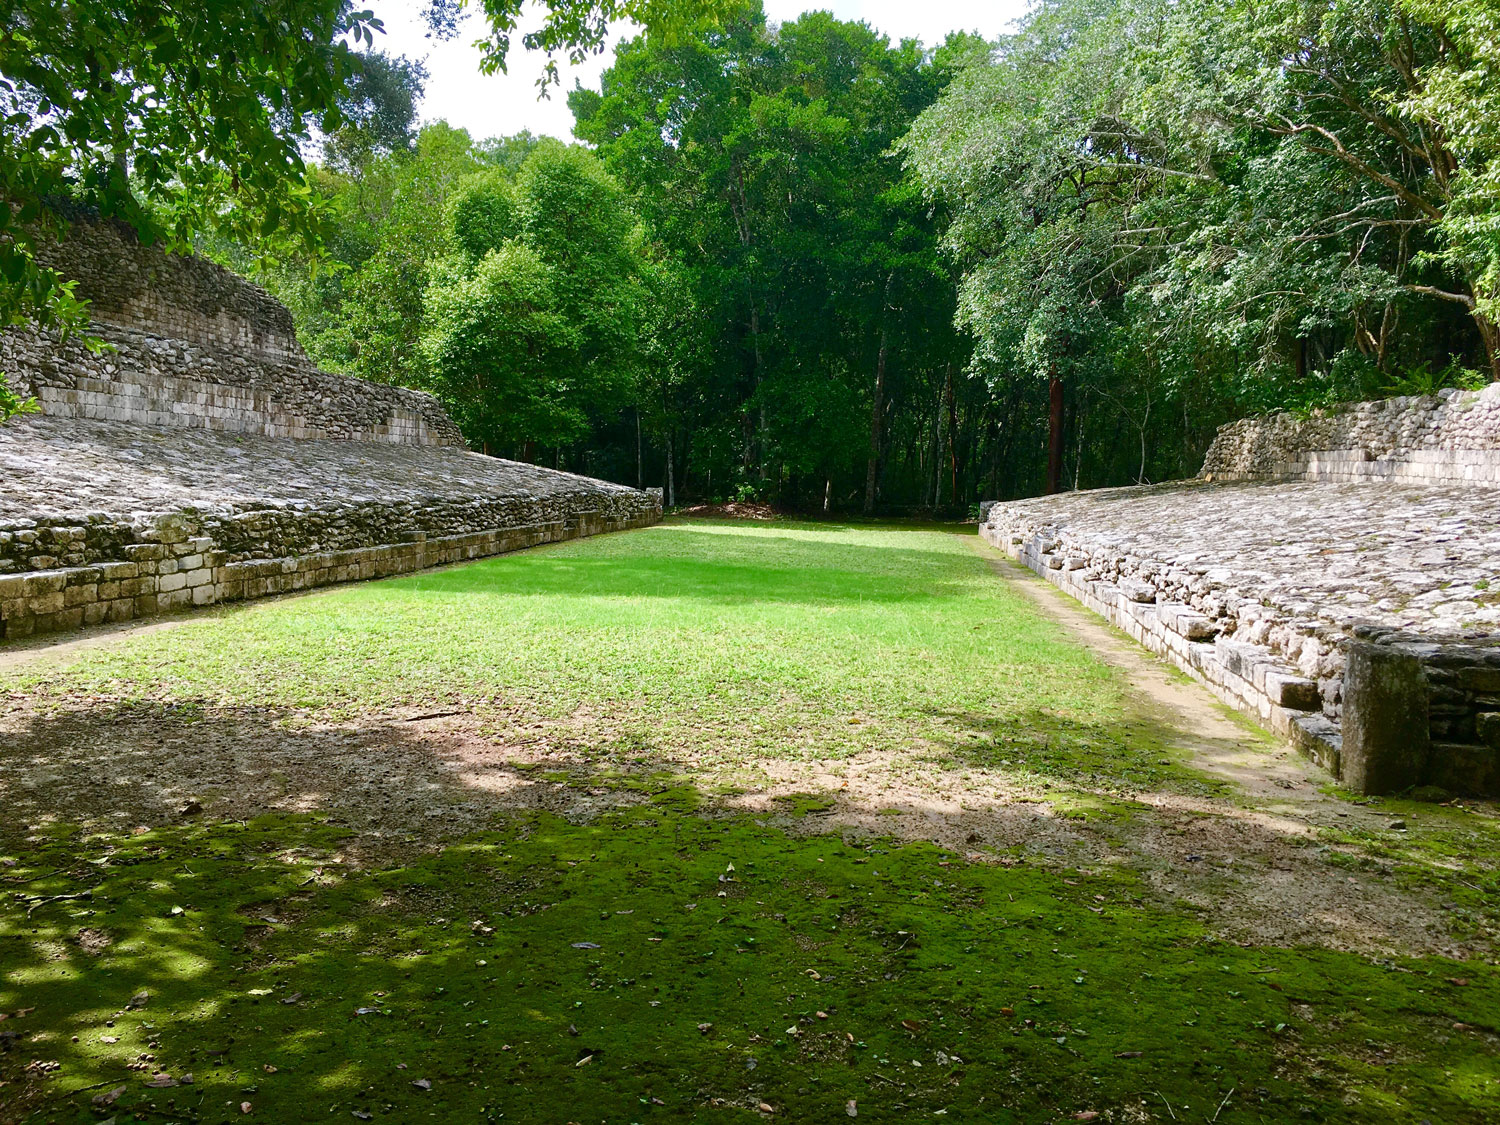 Becán ball court. Above: the ball court at   Cobá  .